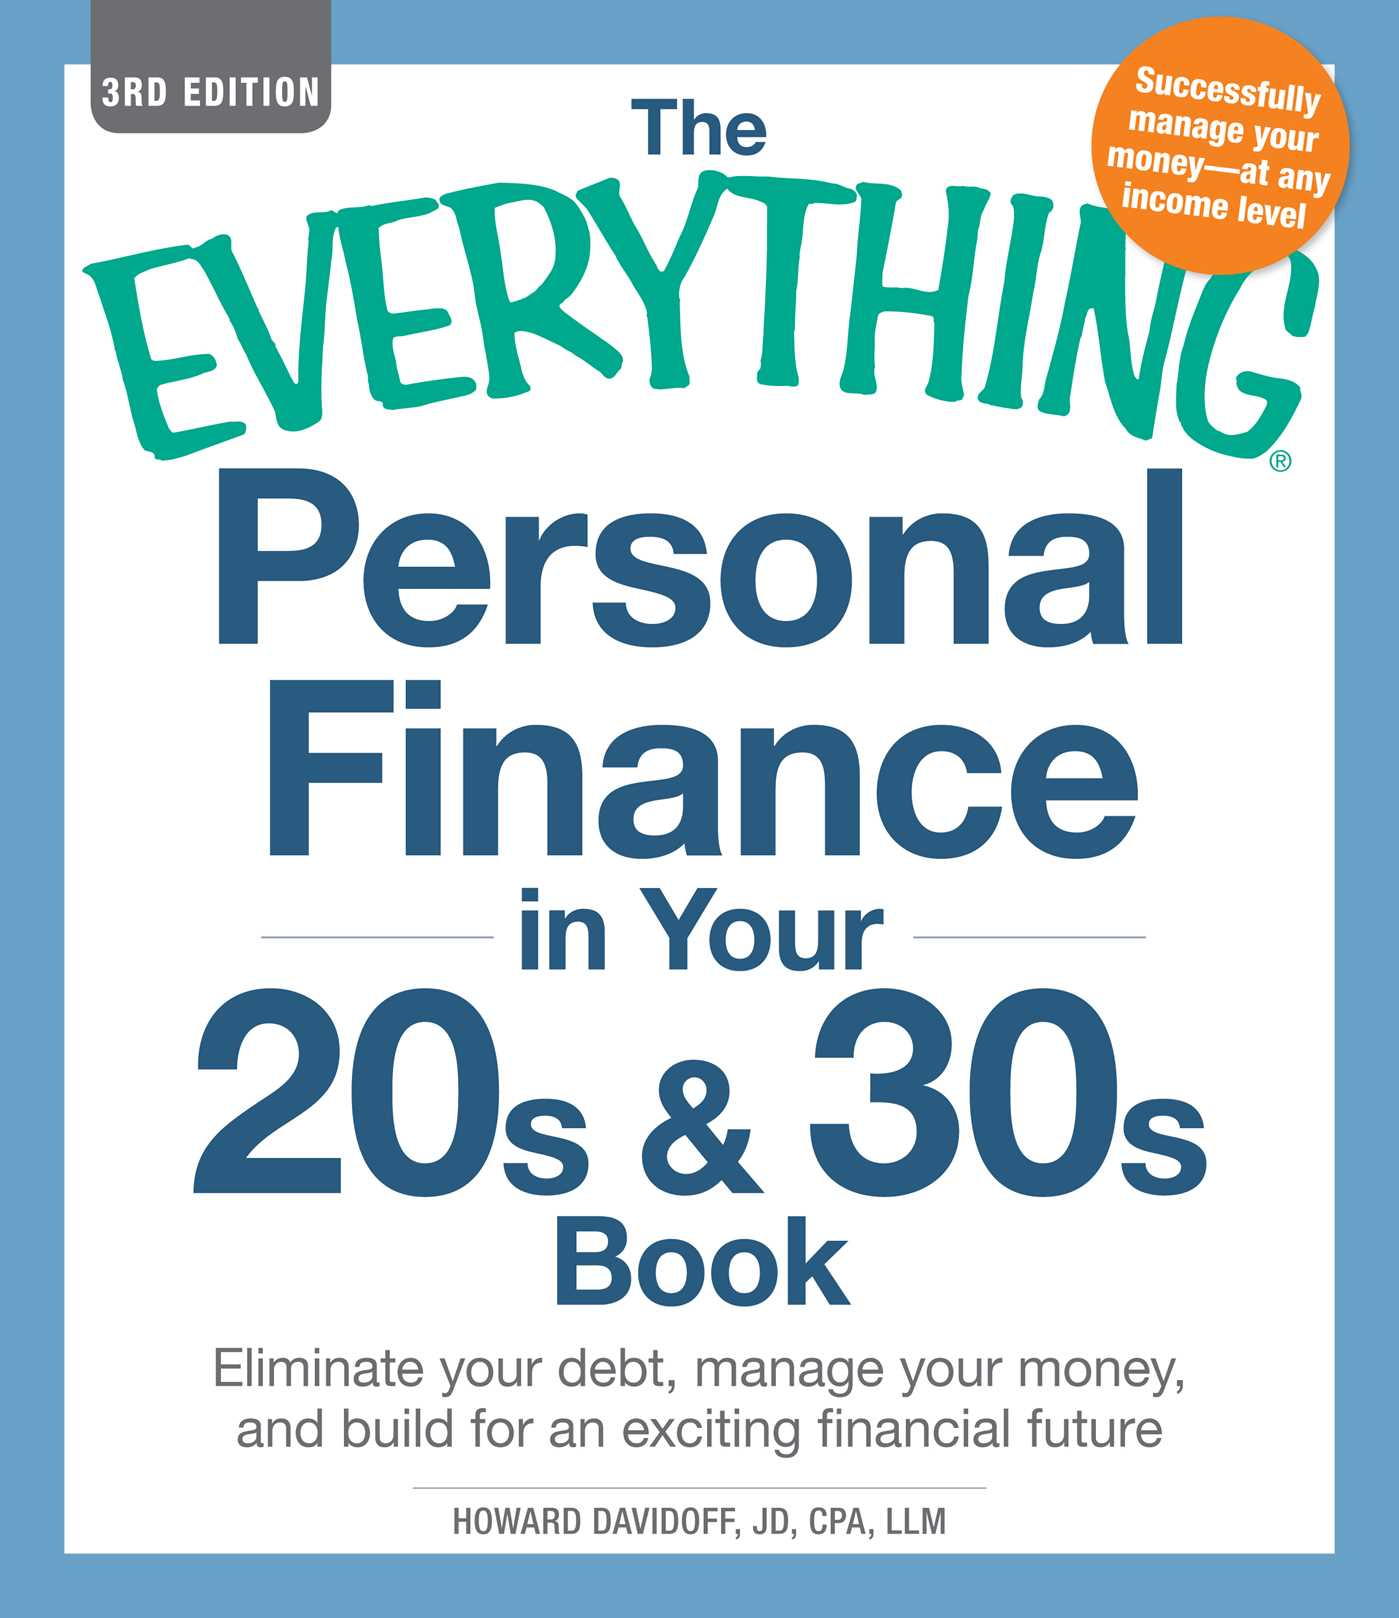 Download Ebook The Everything Personal Finance in Your 20s & 30s Book by Howard Davidoff Pdf